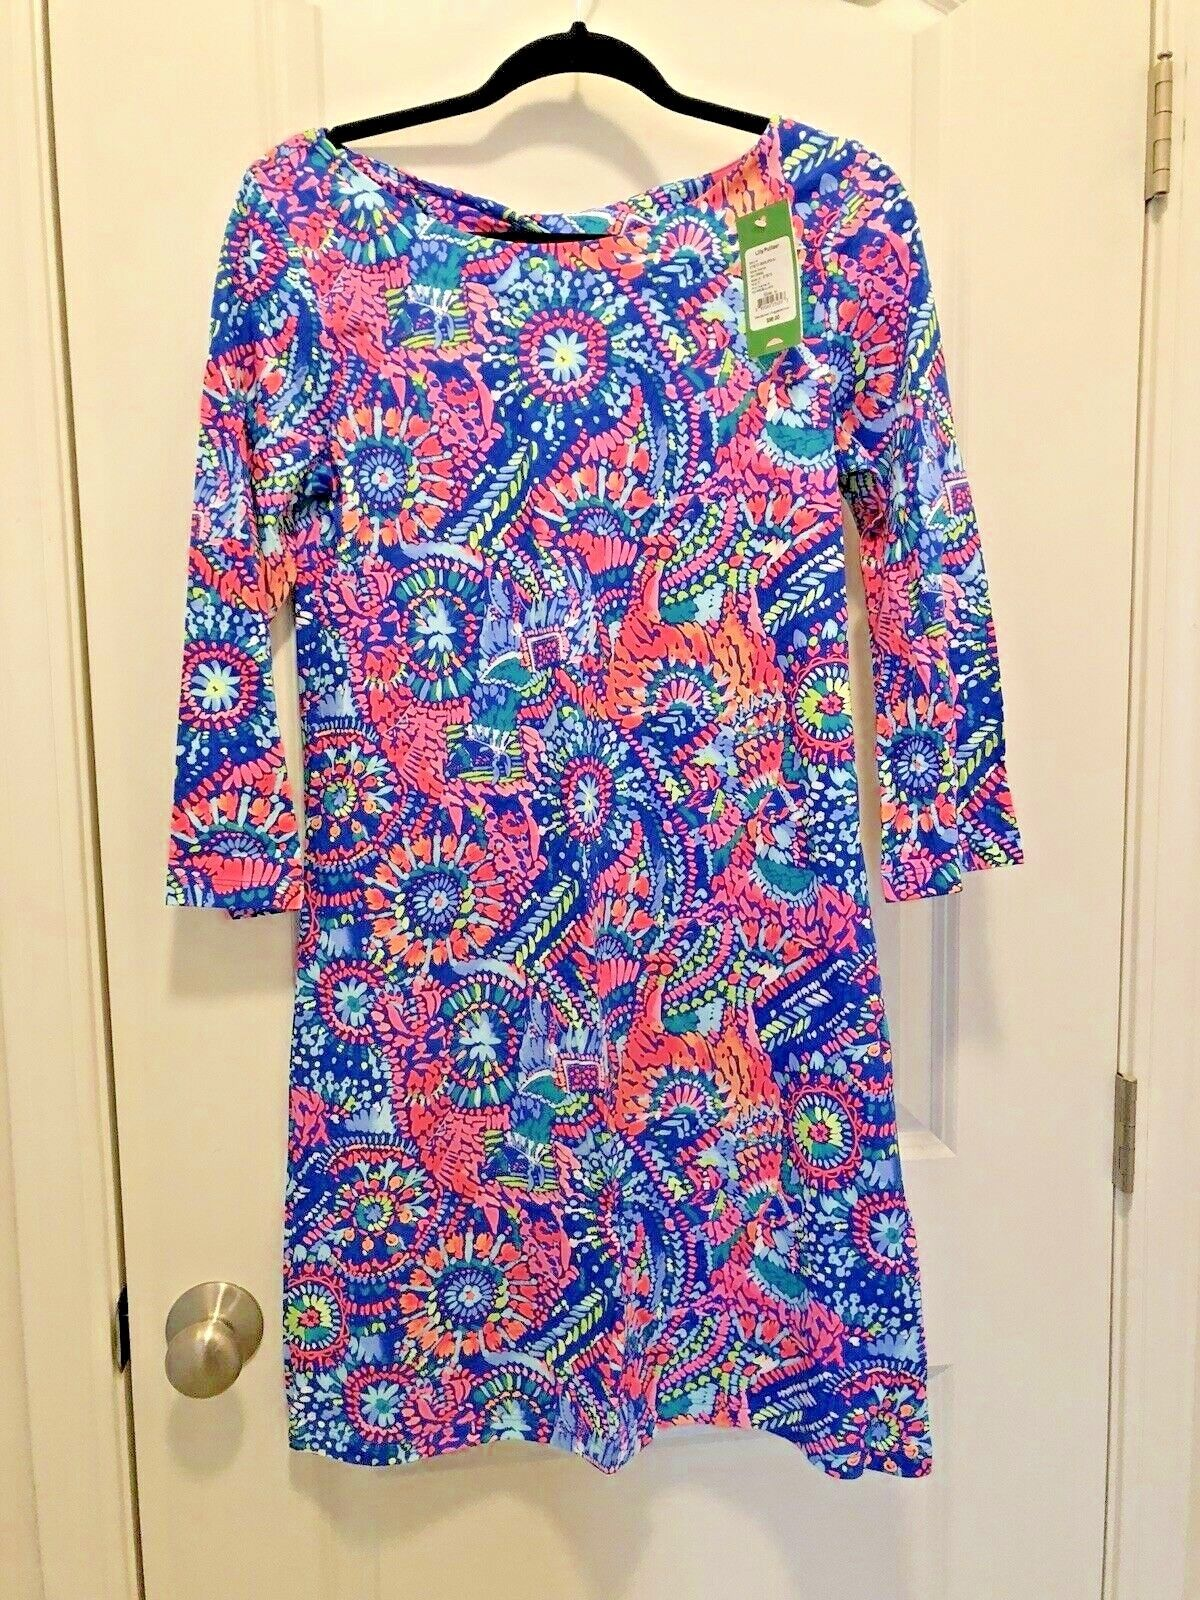 NWT Lilly Pulitzer Bay Dress No Prob llama Medium M